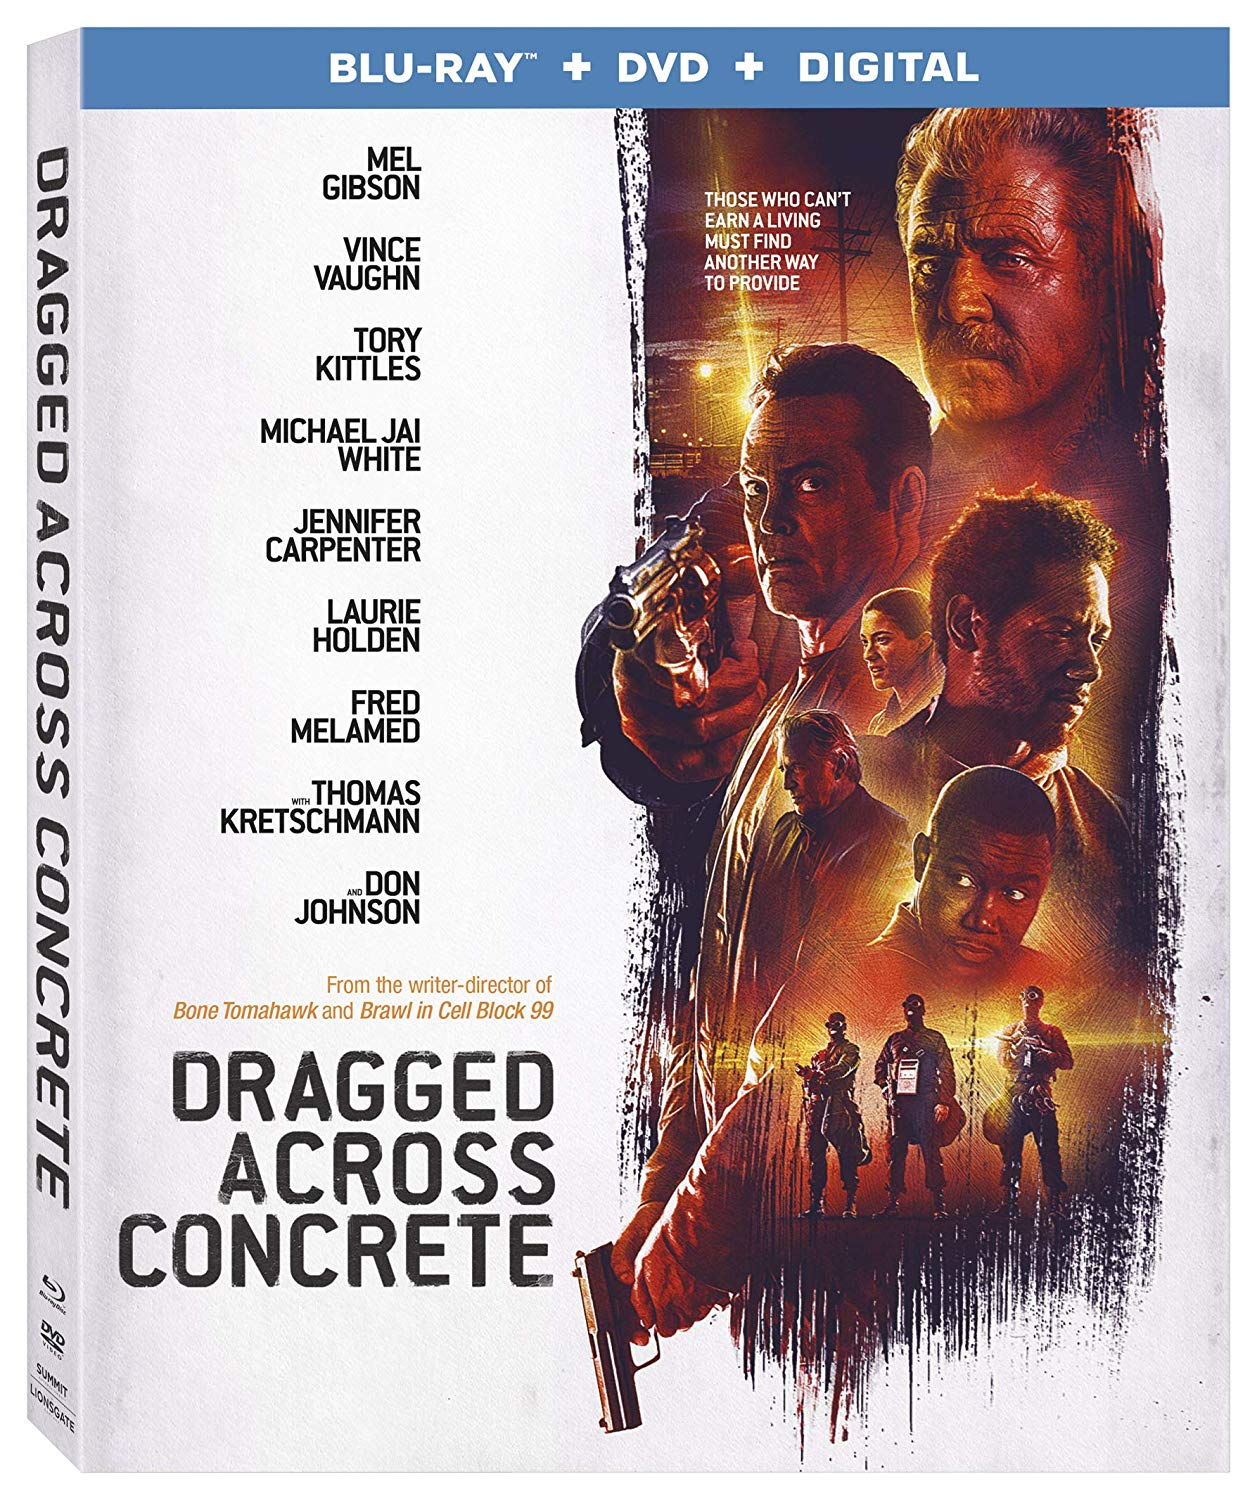 Dragged Across Concrete [Movie] - Dragged Across Concrete